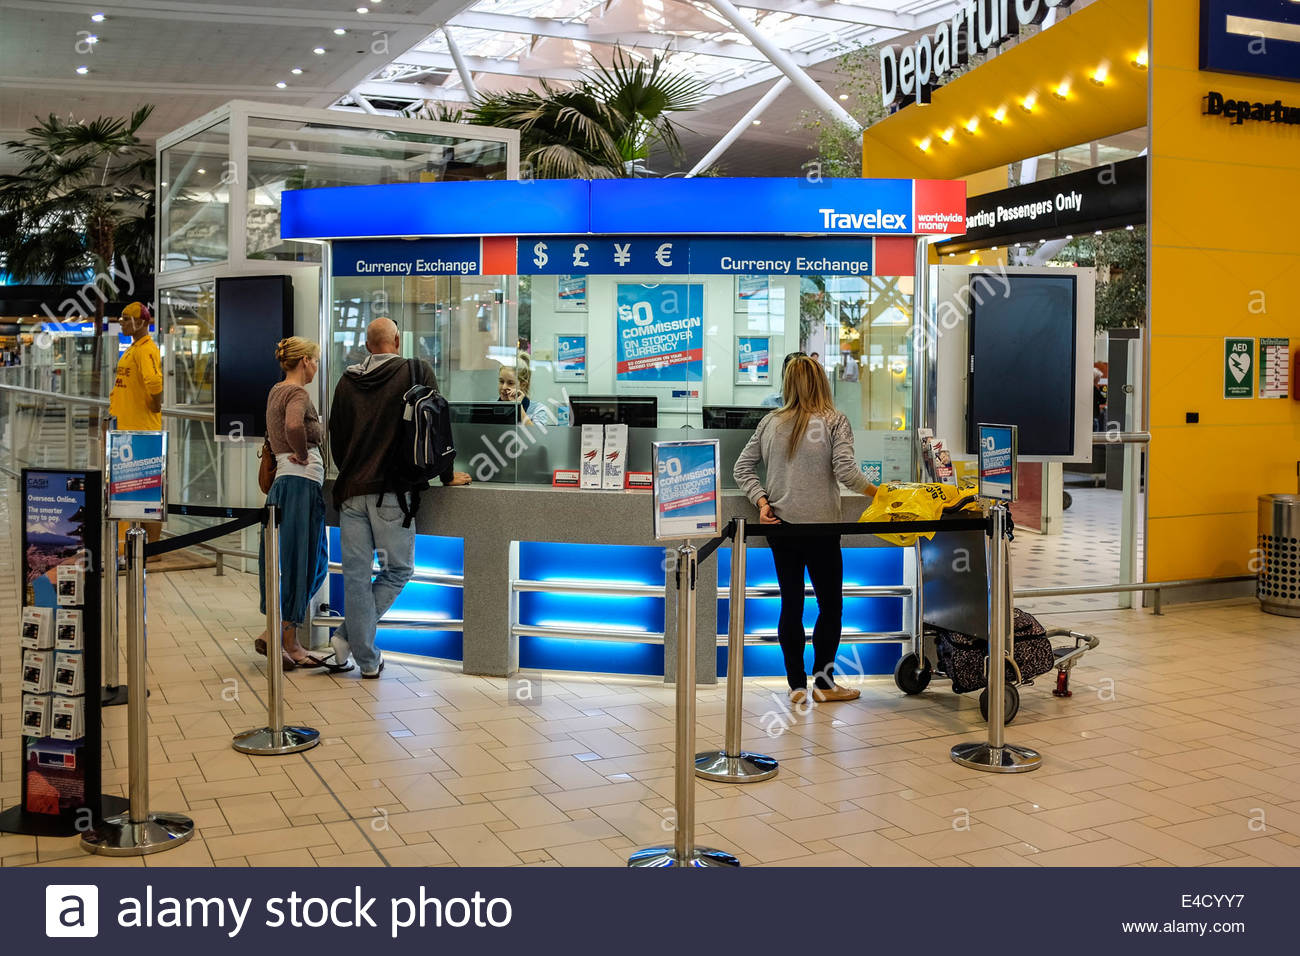 currency-exchange-office-at-brisbane-international-airport-E4CYY7.jpg